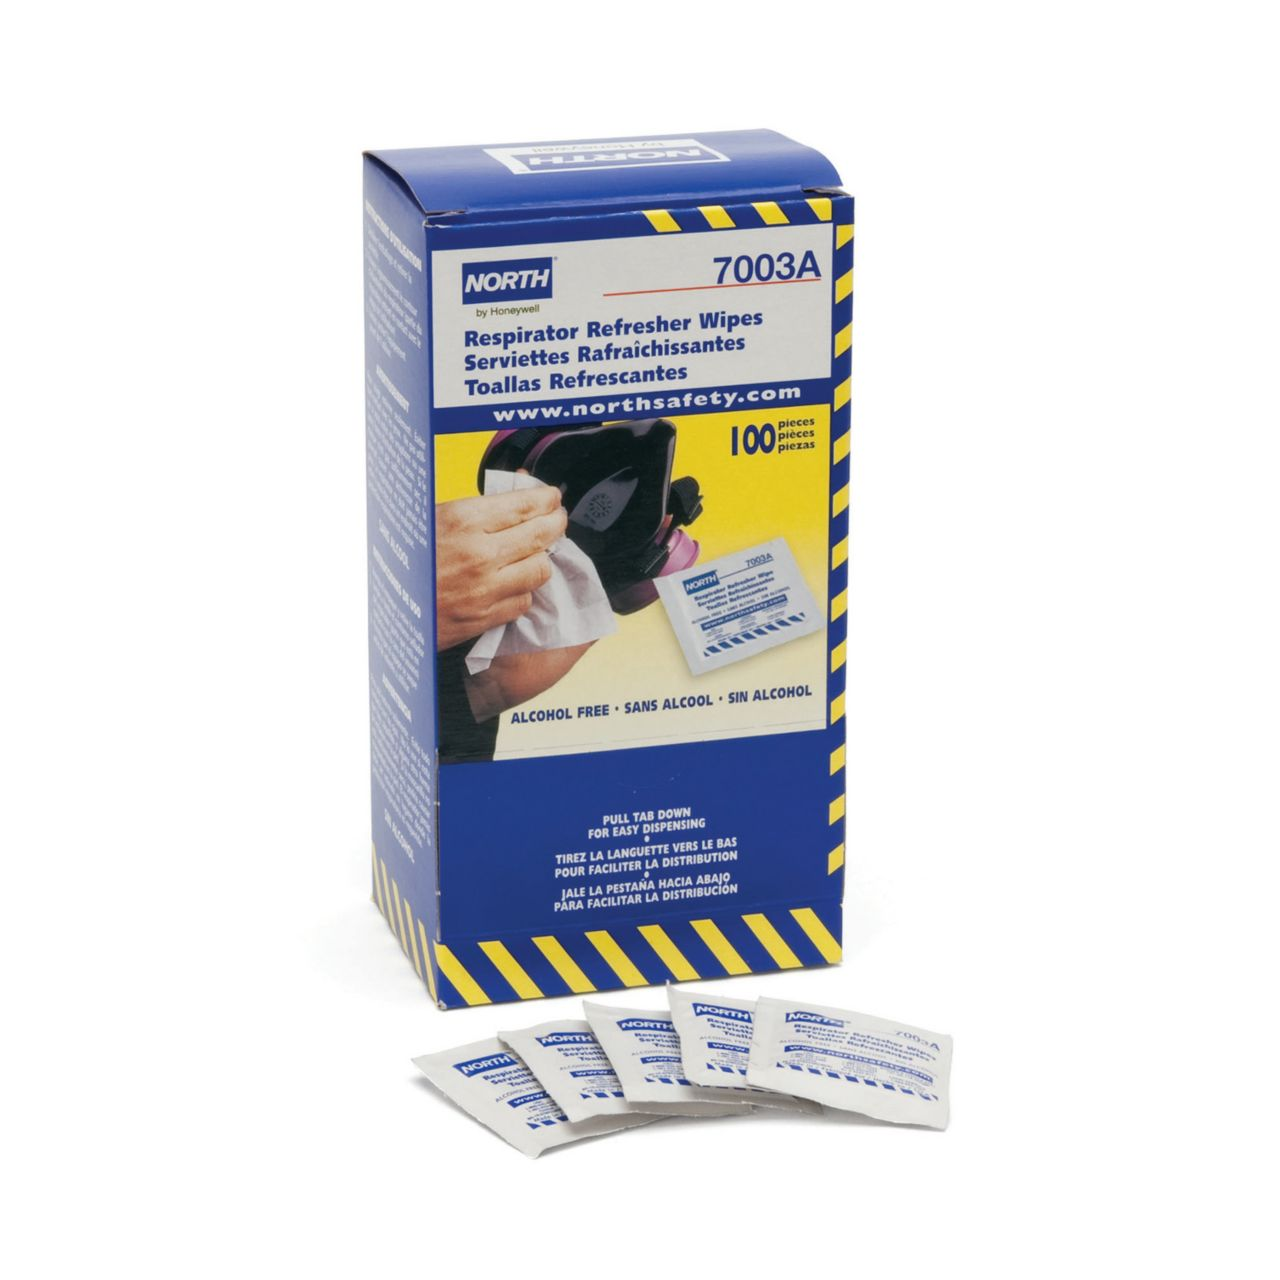 HS_respiratory_accessories_7003a_north_resp_wipe_pad